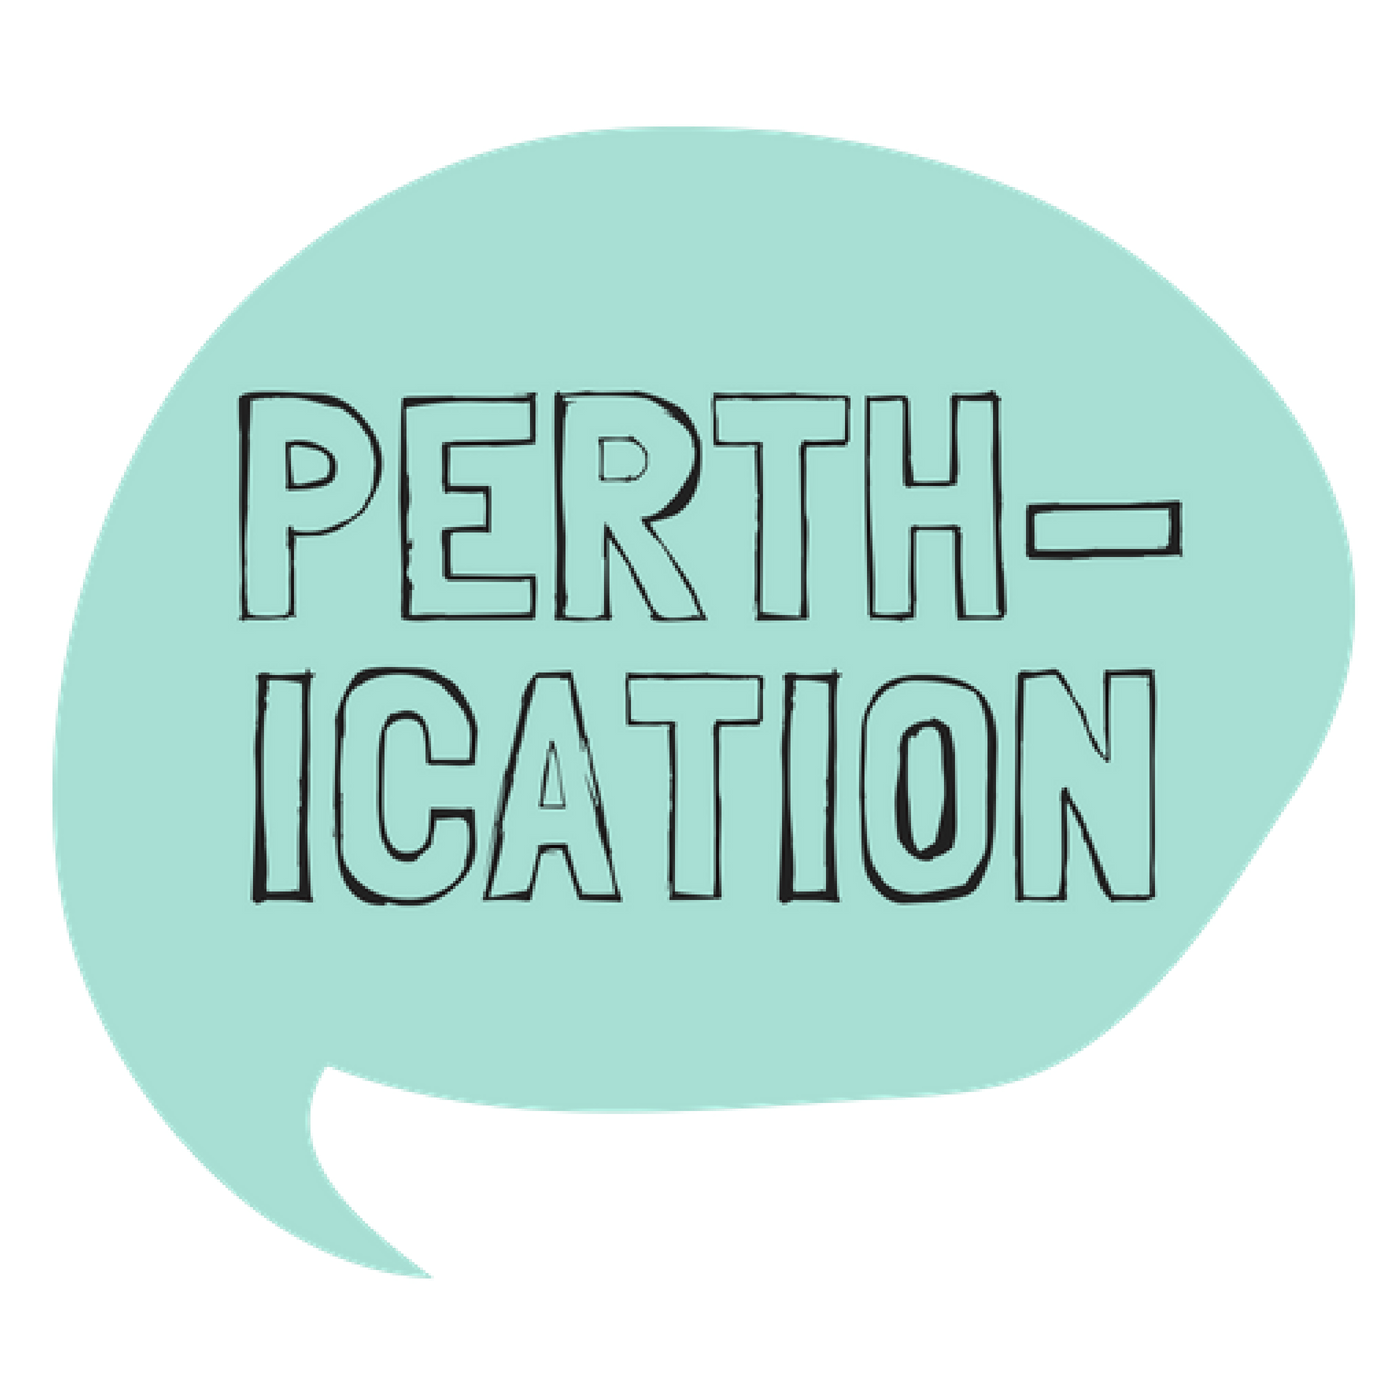 Perthication